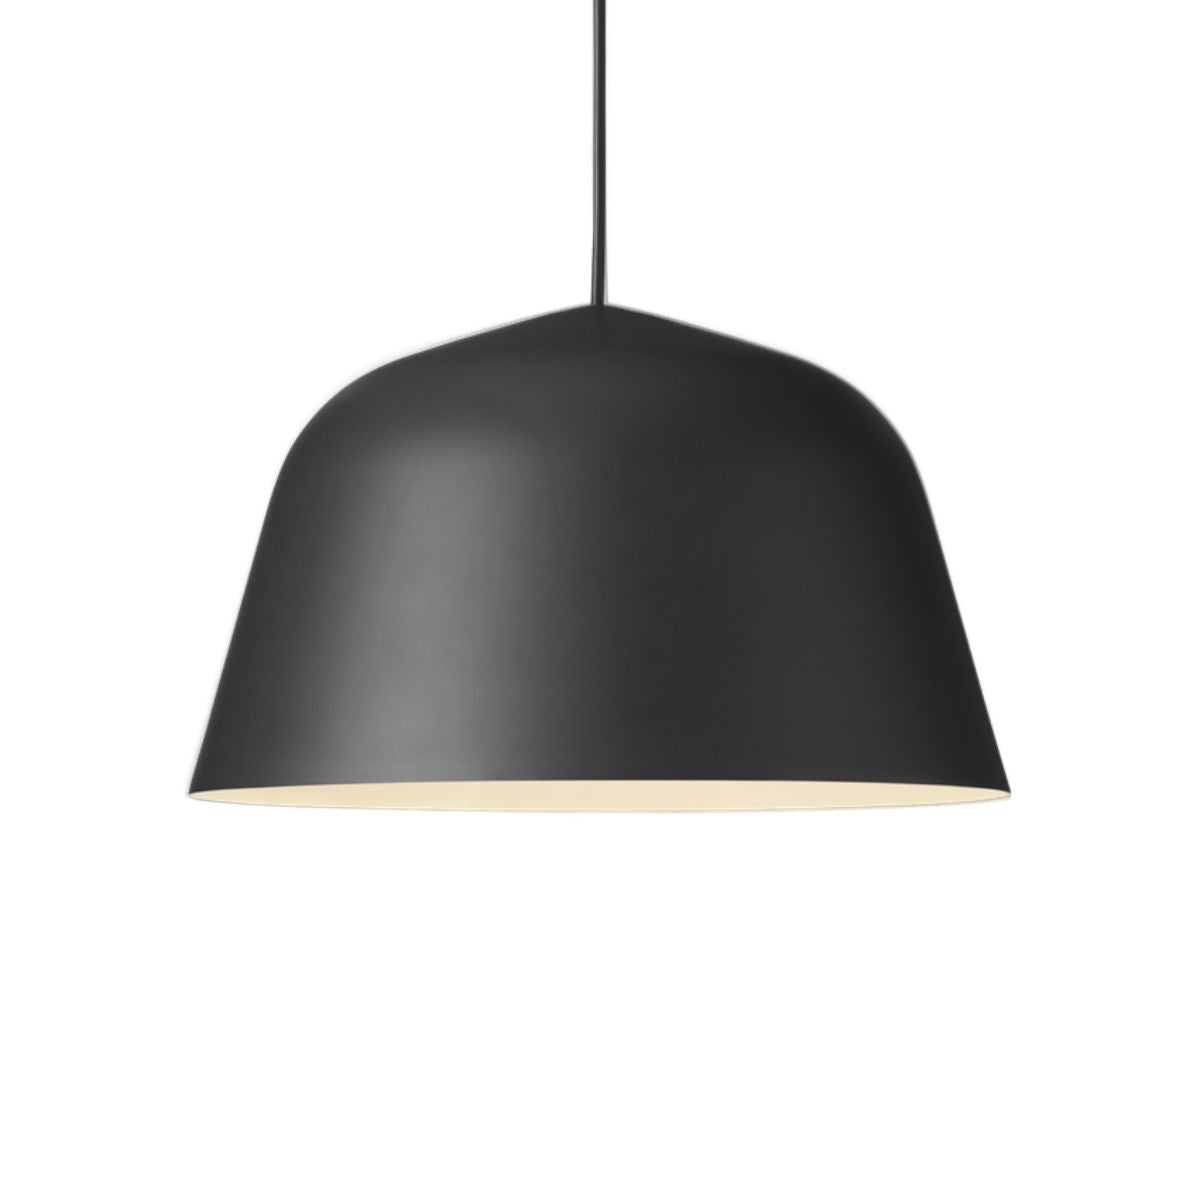 Muuto Ambit pendant lamp, black